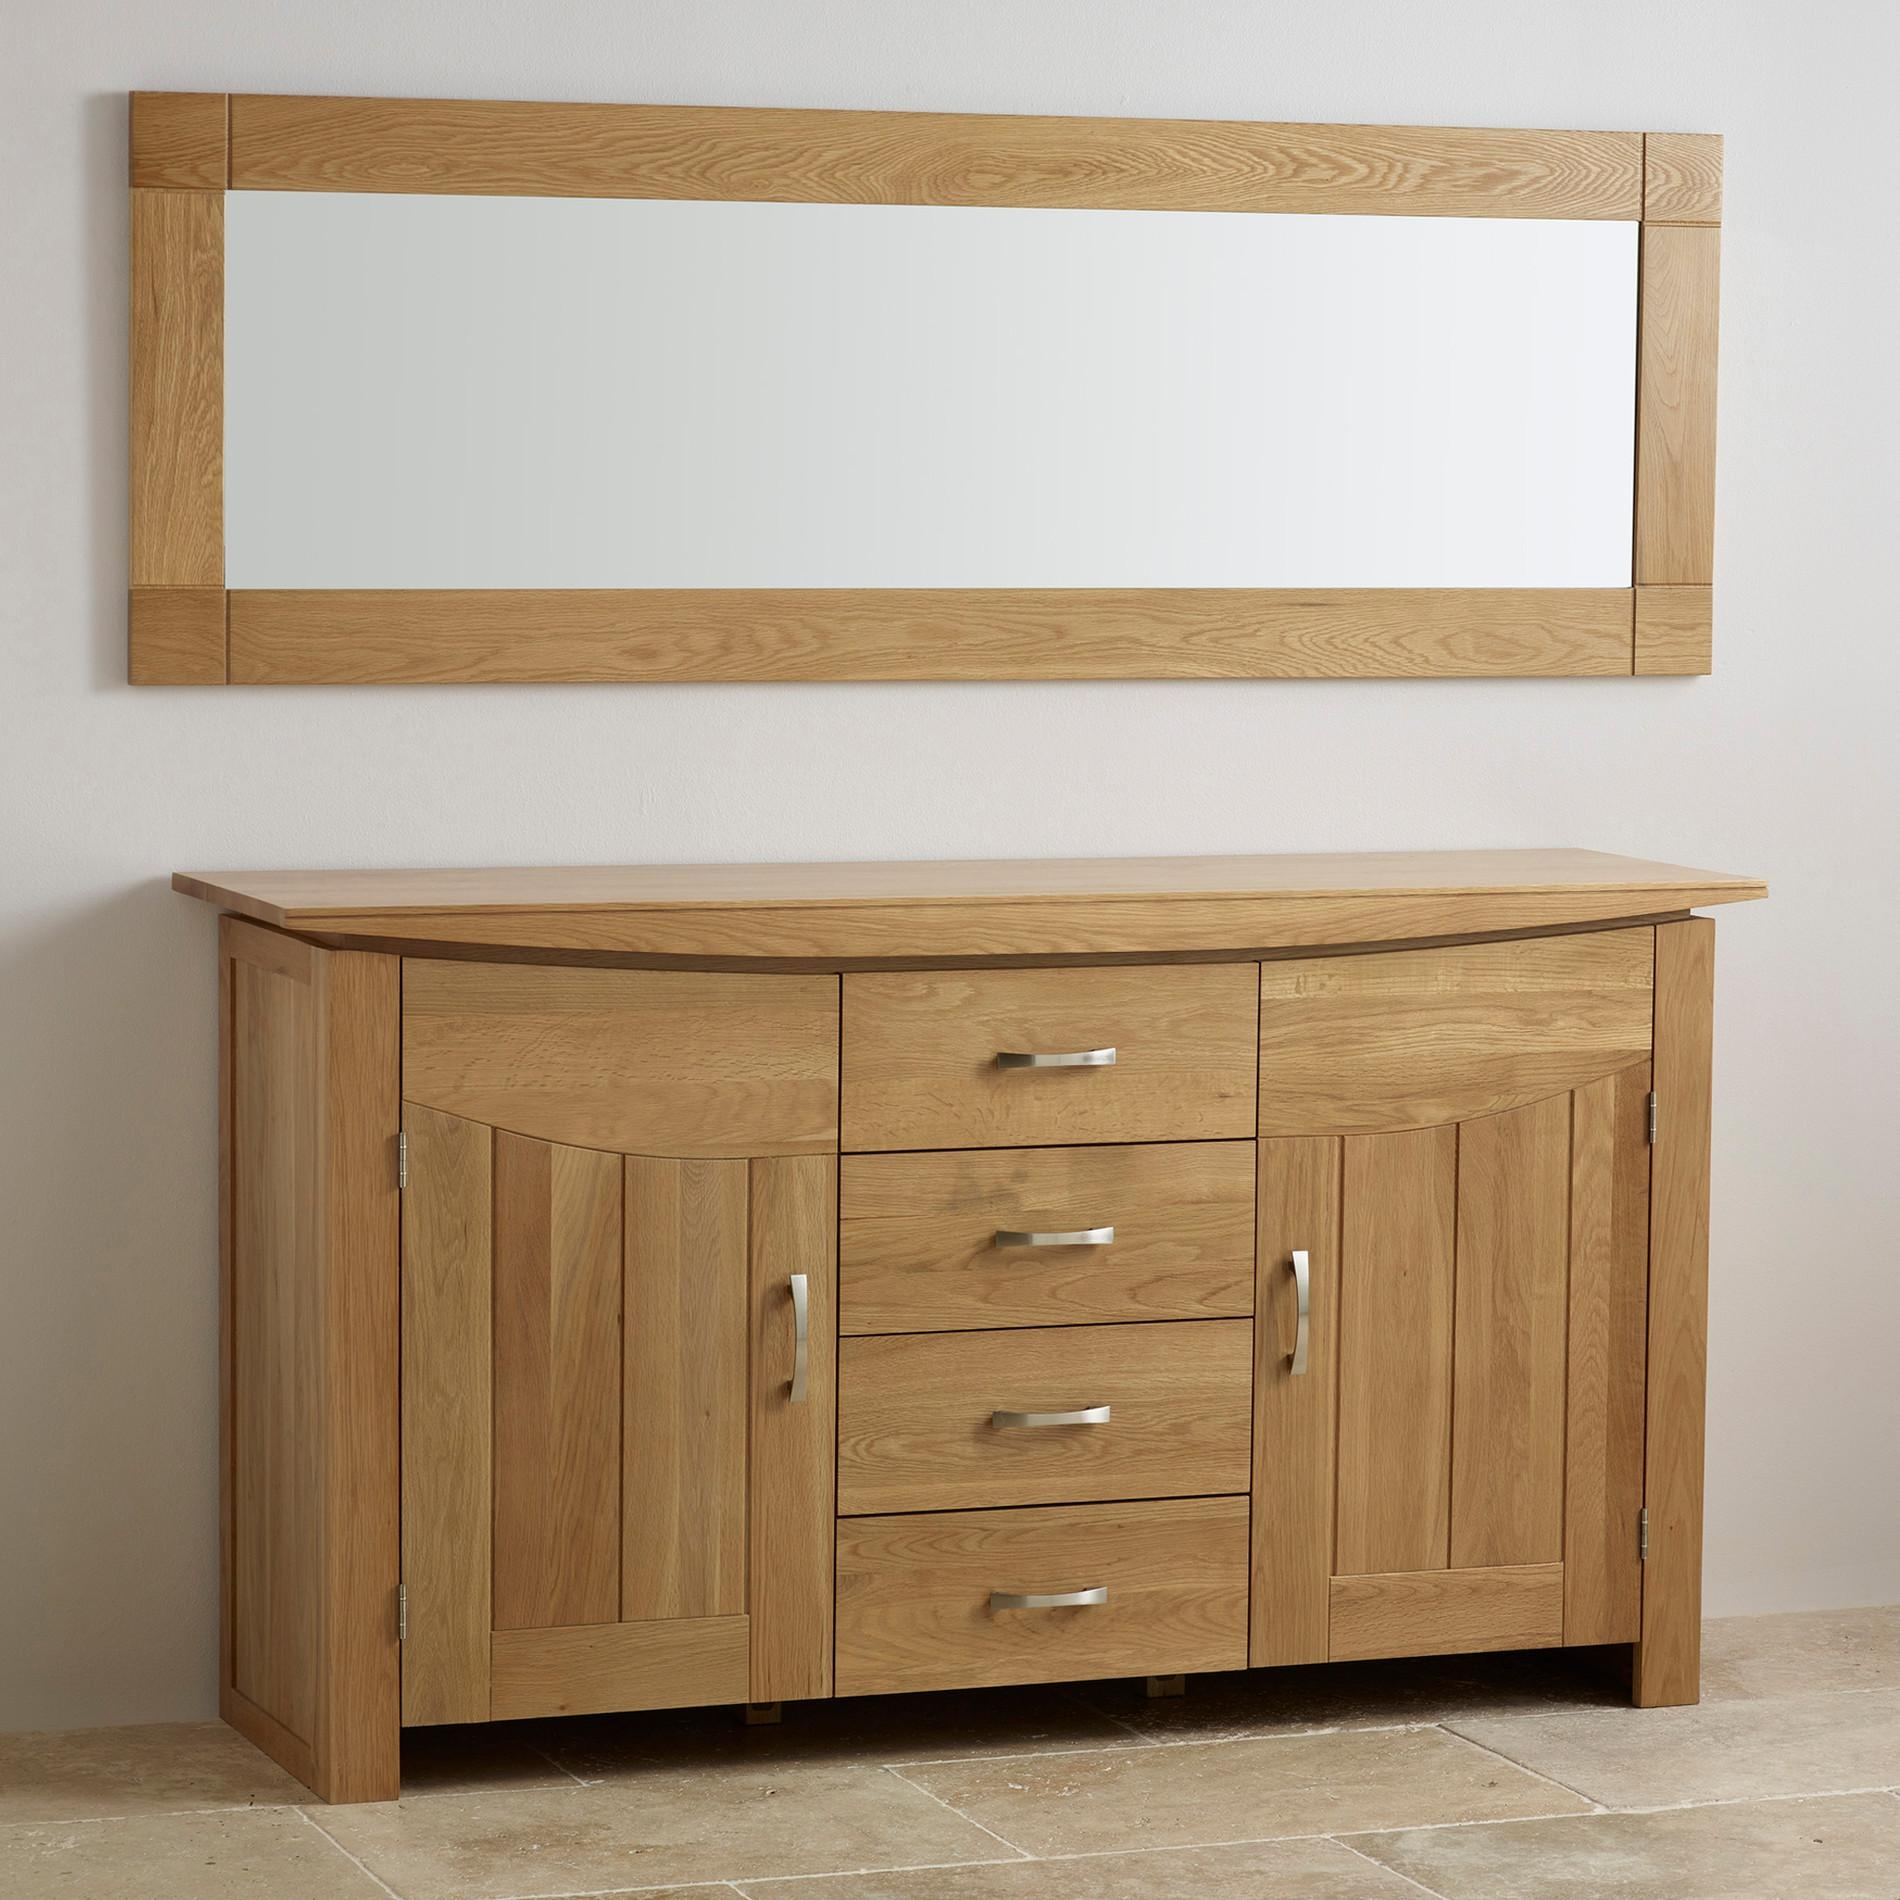 Mirrors | Bring Light To Your Room | Oak Furniture Land Throughout Oak Framed Wall Mirror (Image 3 of 20)